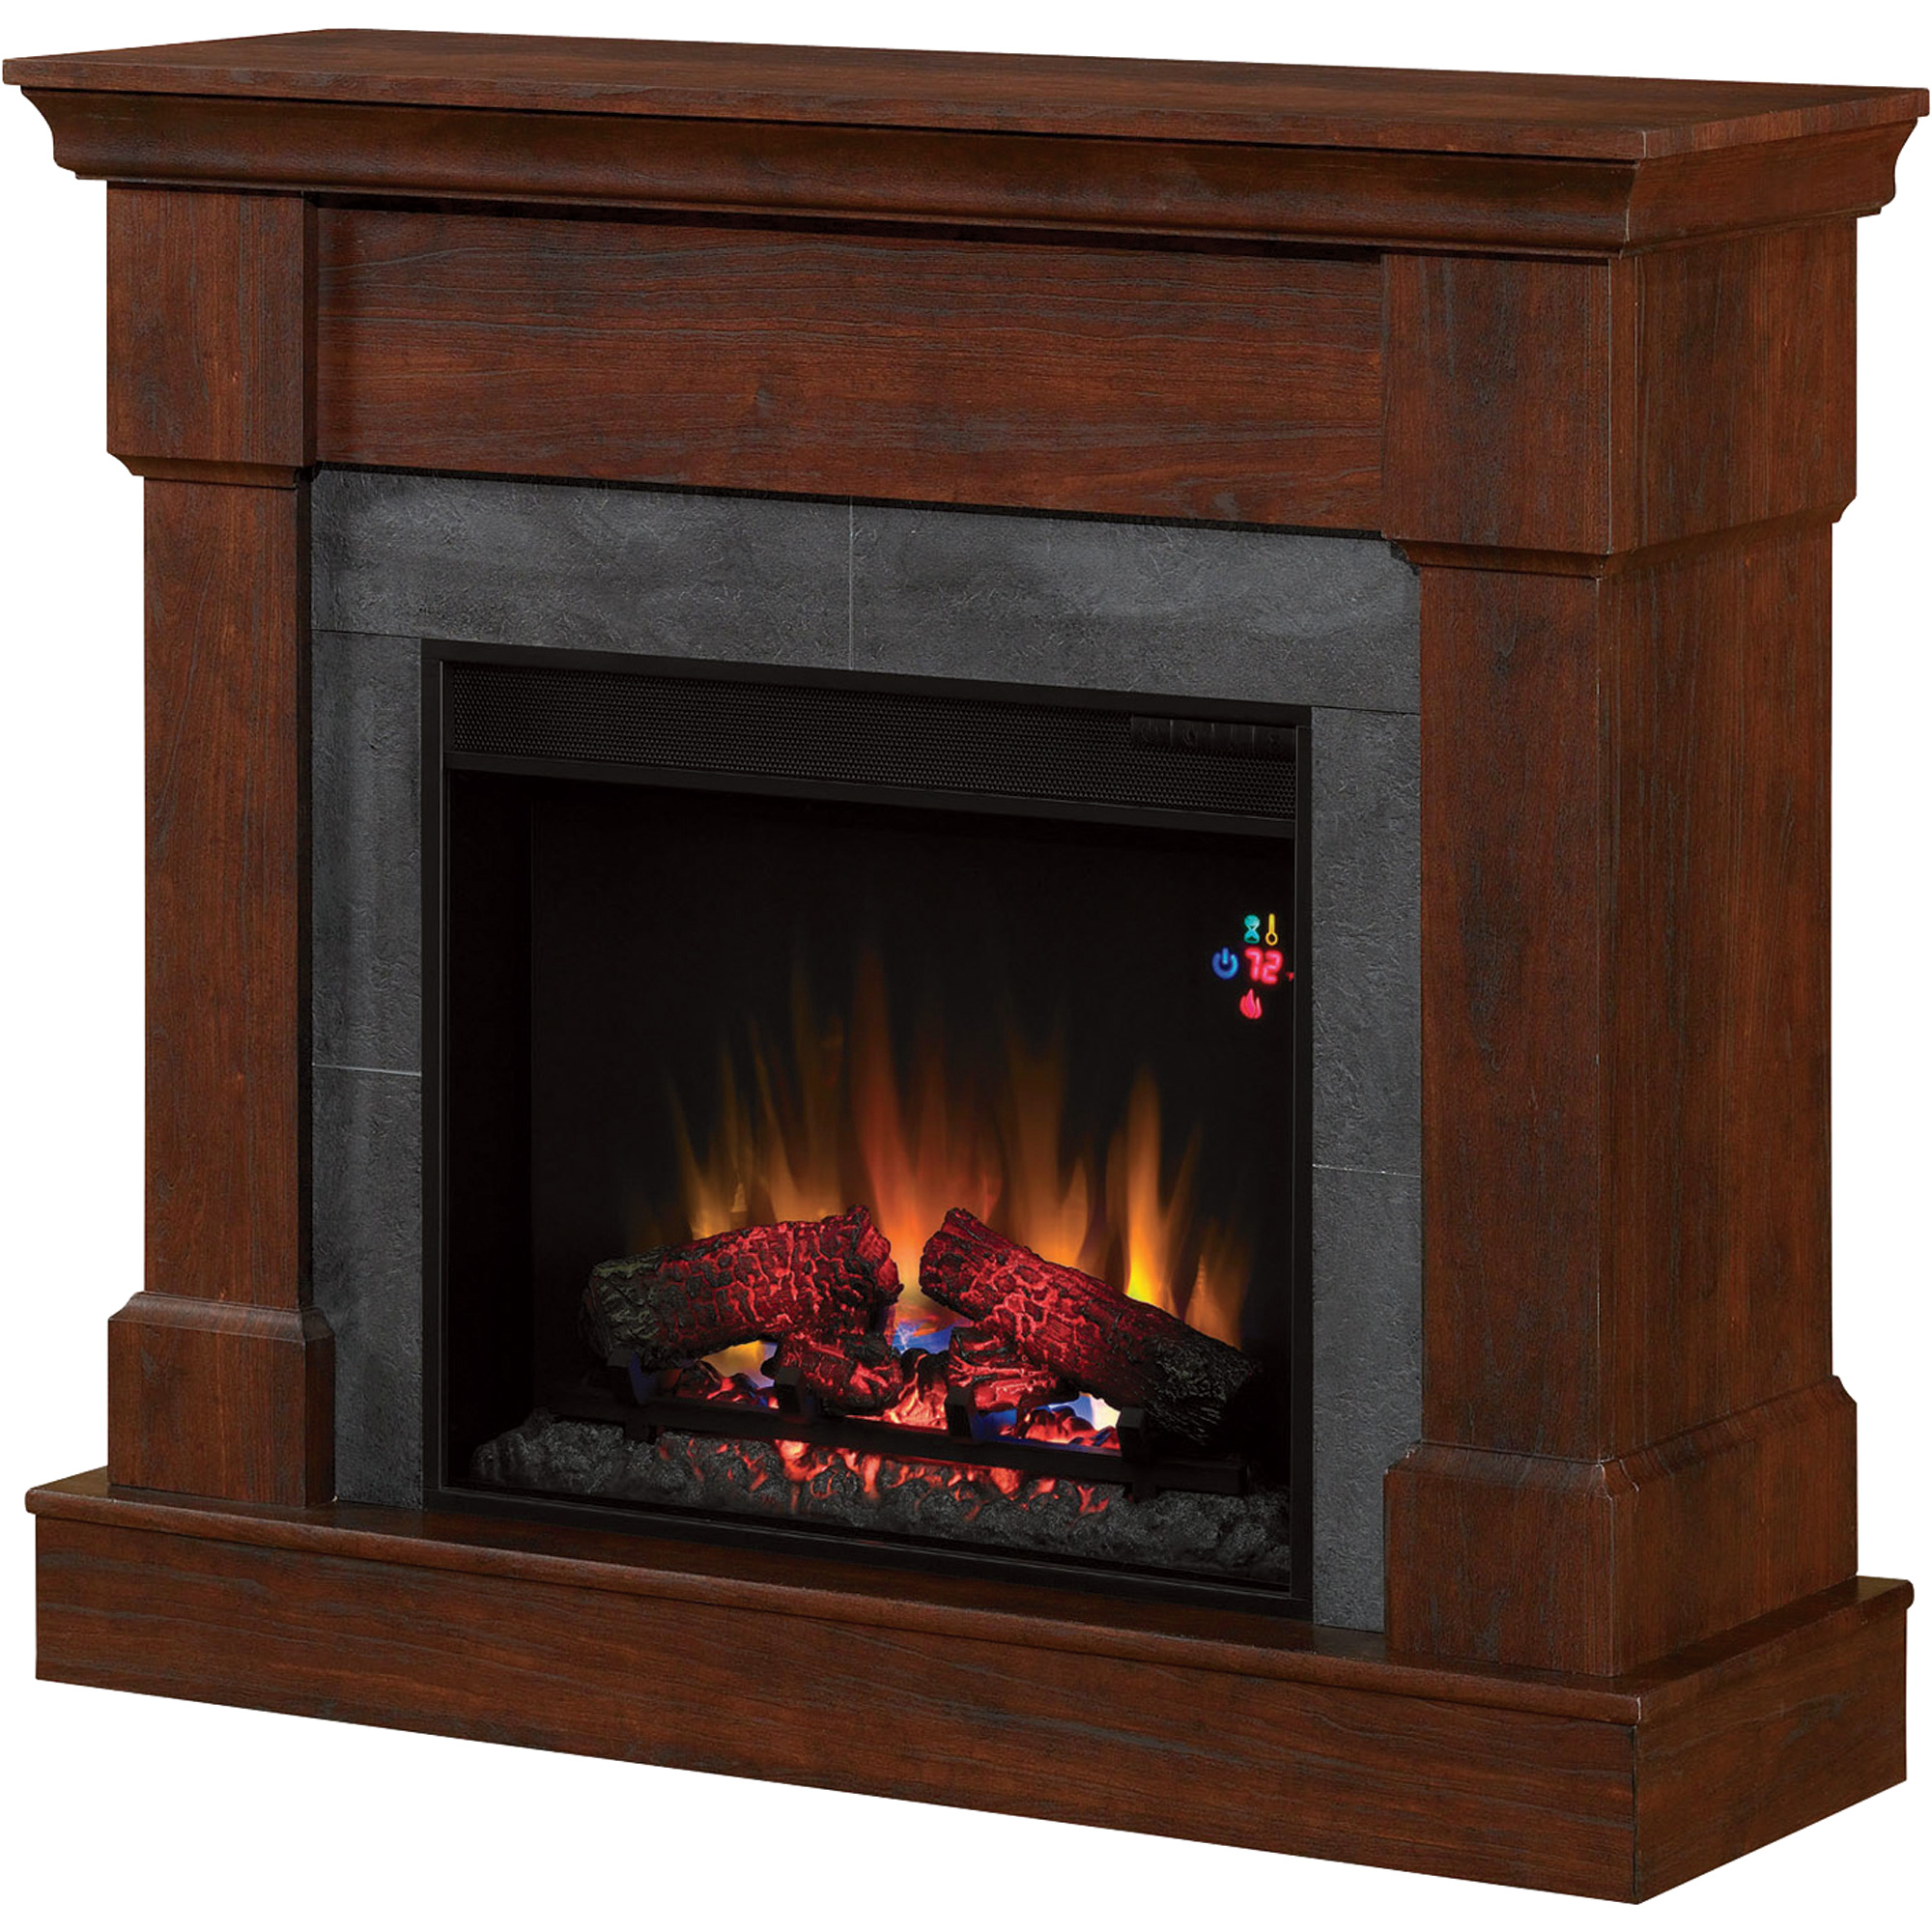 Product Chimneyfree Vent Free Franklin Dual Mantel Electric Fireplace 4600 Btu Model